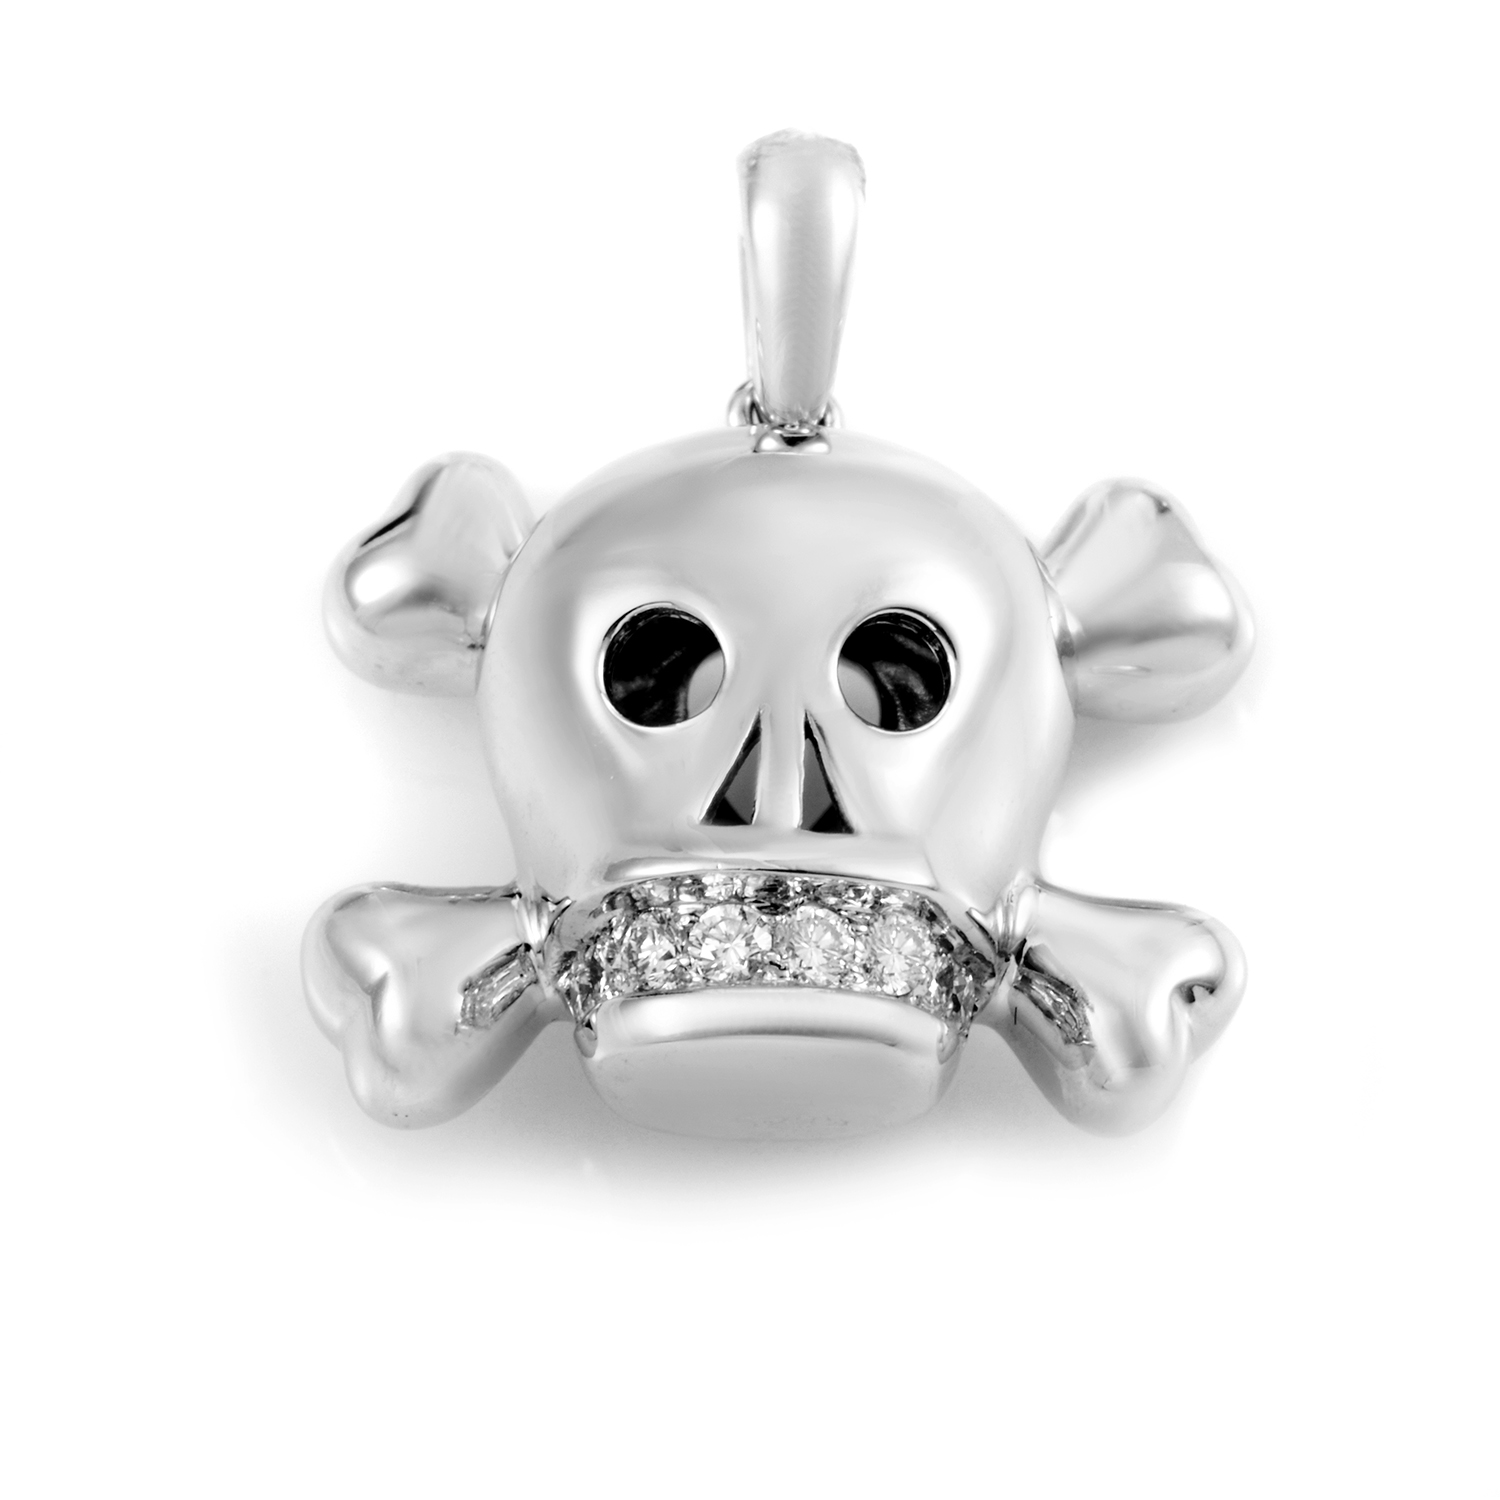 Tête de Mort 18K White Gold Diamond Pendant